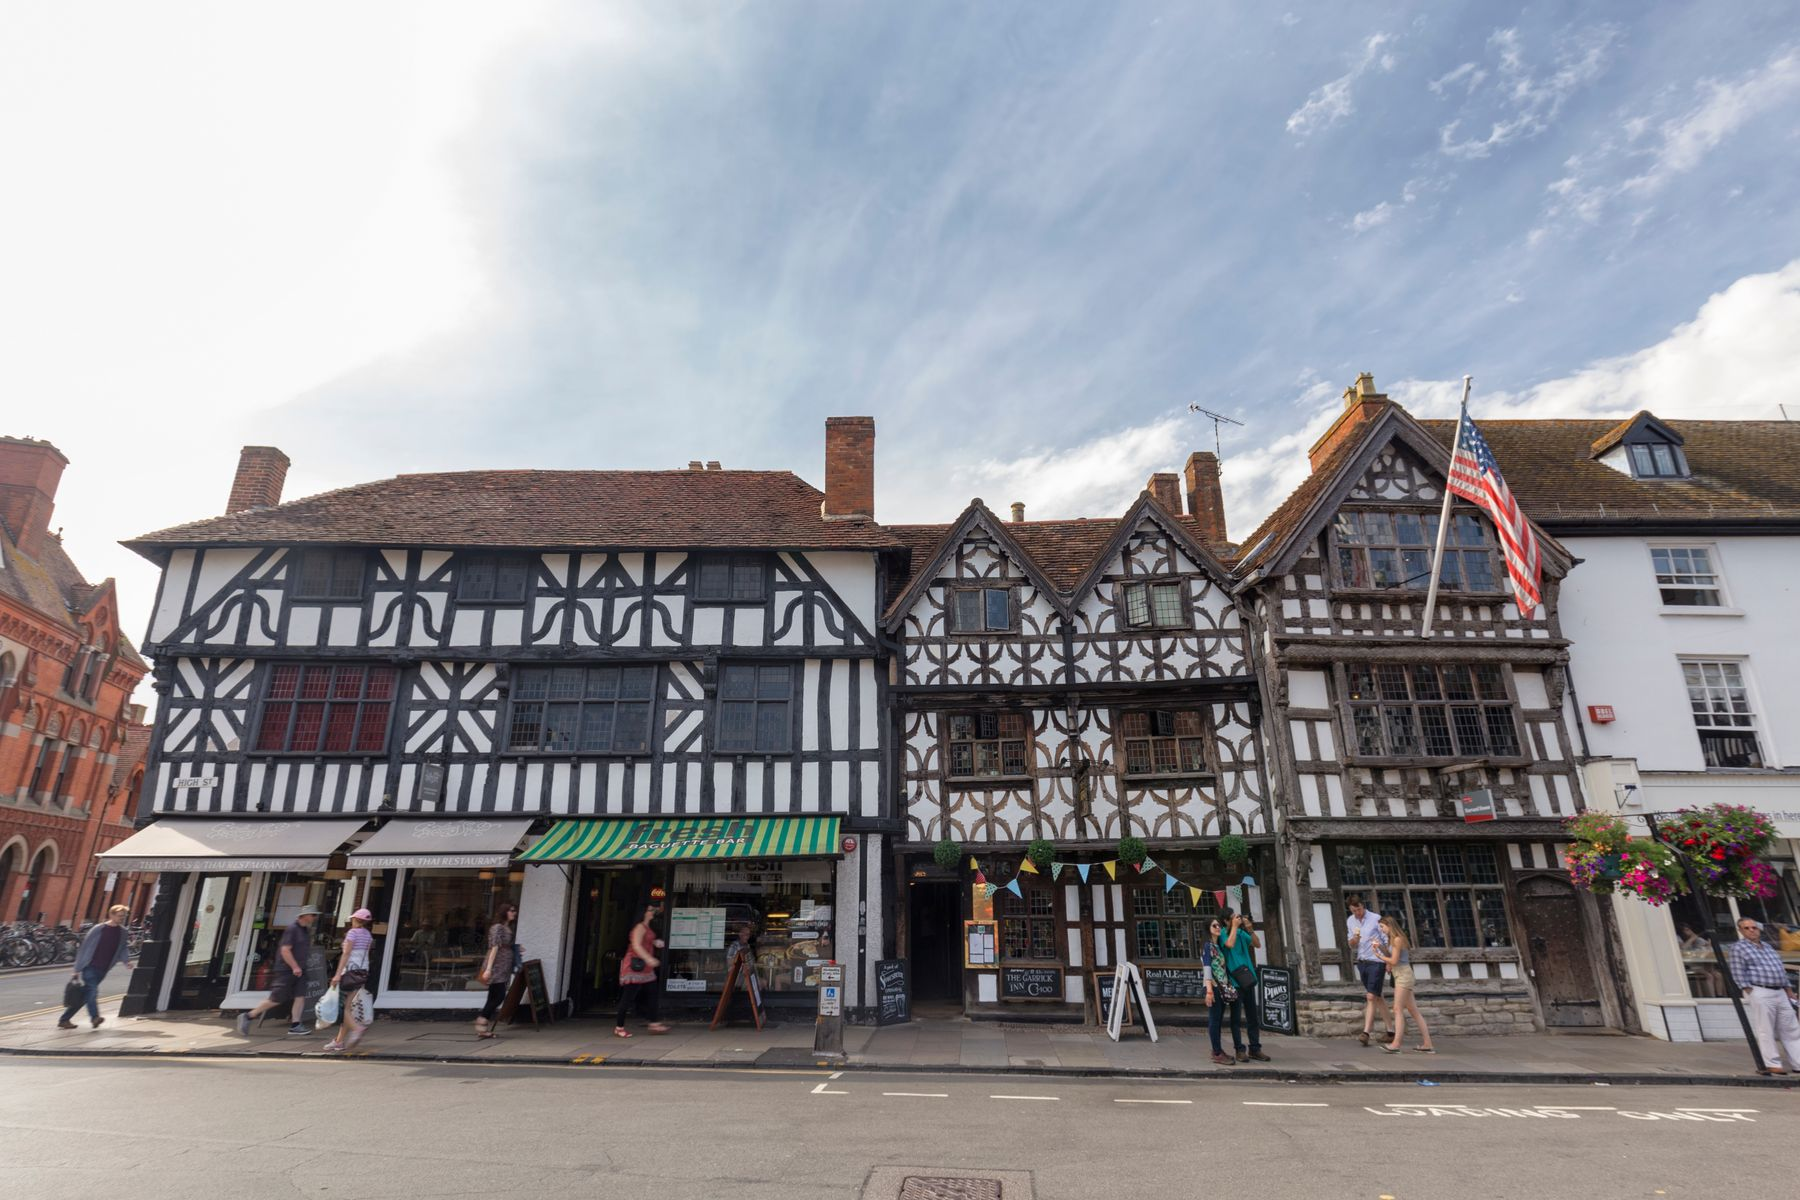 Photo shows traditional beamed Tudor style buildings in Stratford Upon Avon